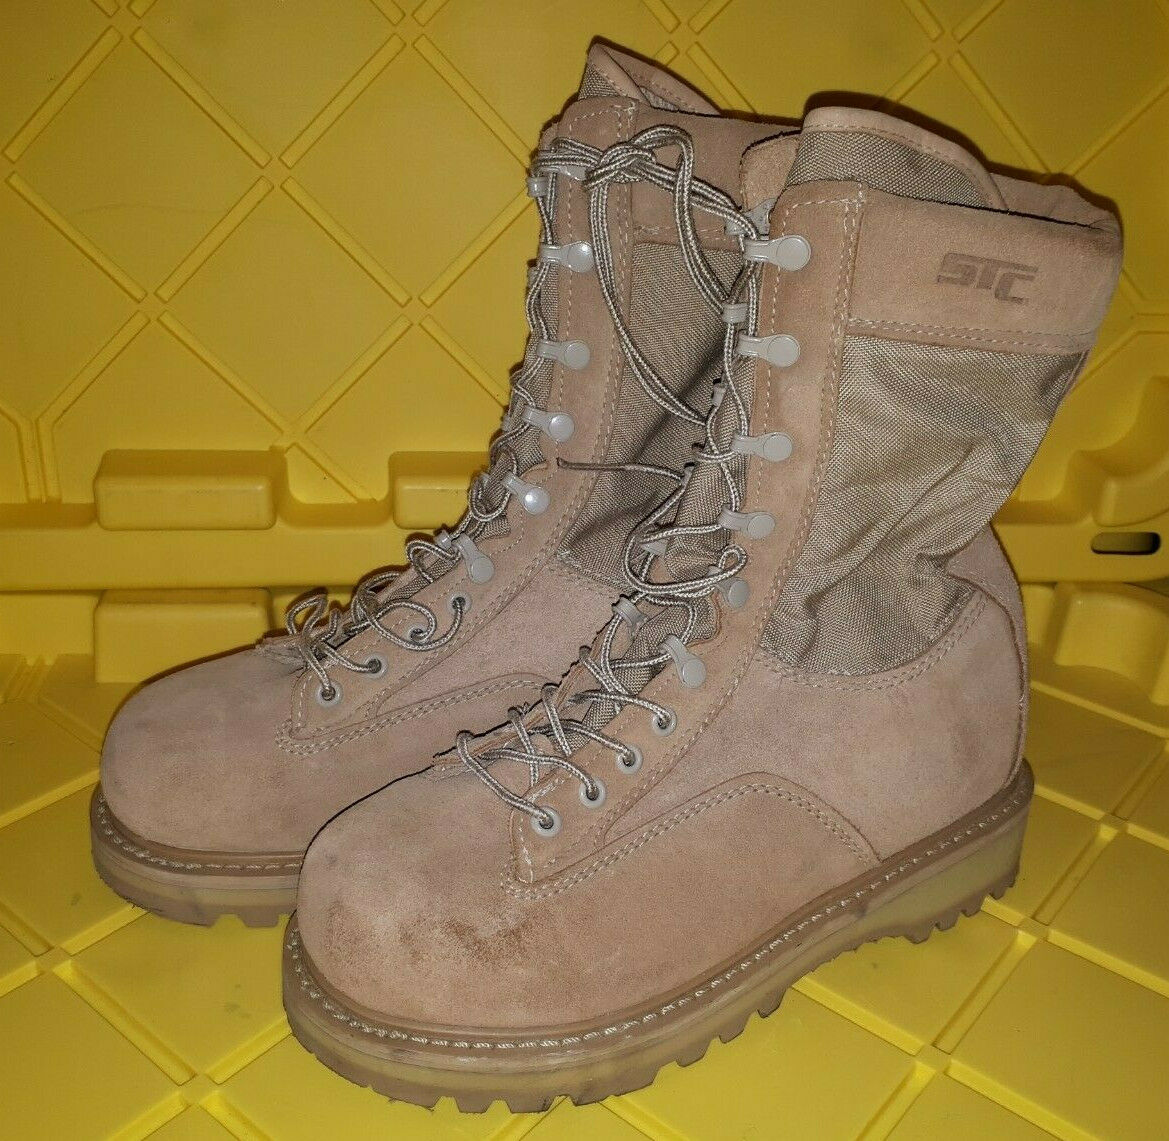 Canadian Forces Army Hot Weather CSA Steel Toe Combat Boots 255 96